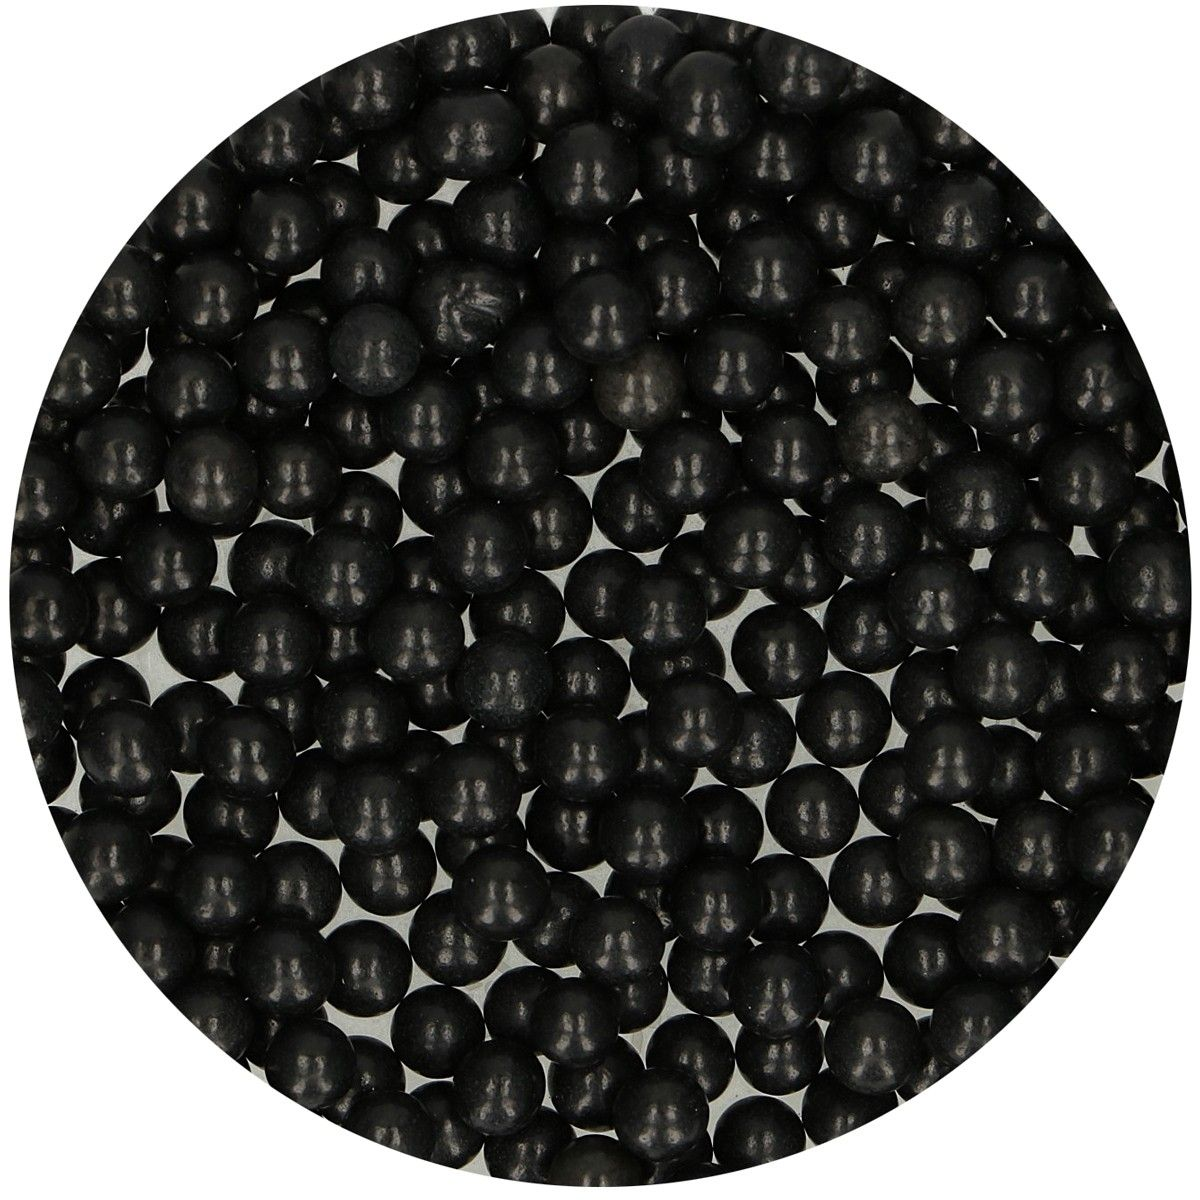 FunCakes Sugarpearls 7mm -Shiny Black- 80g